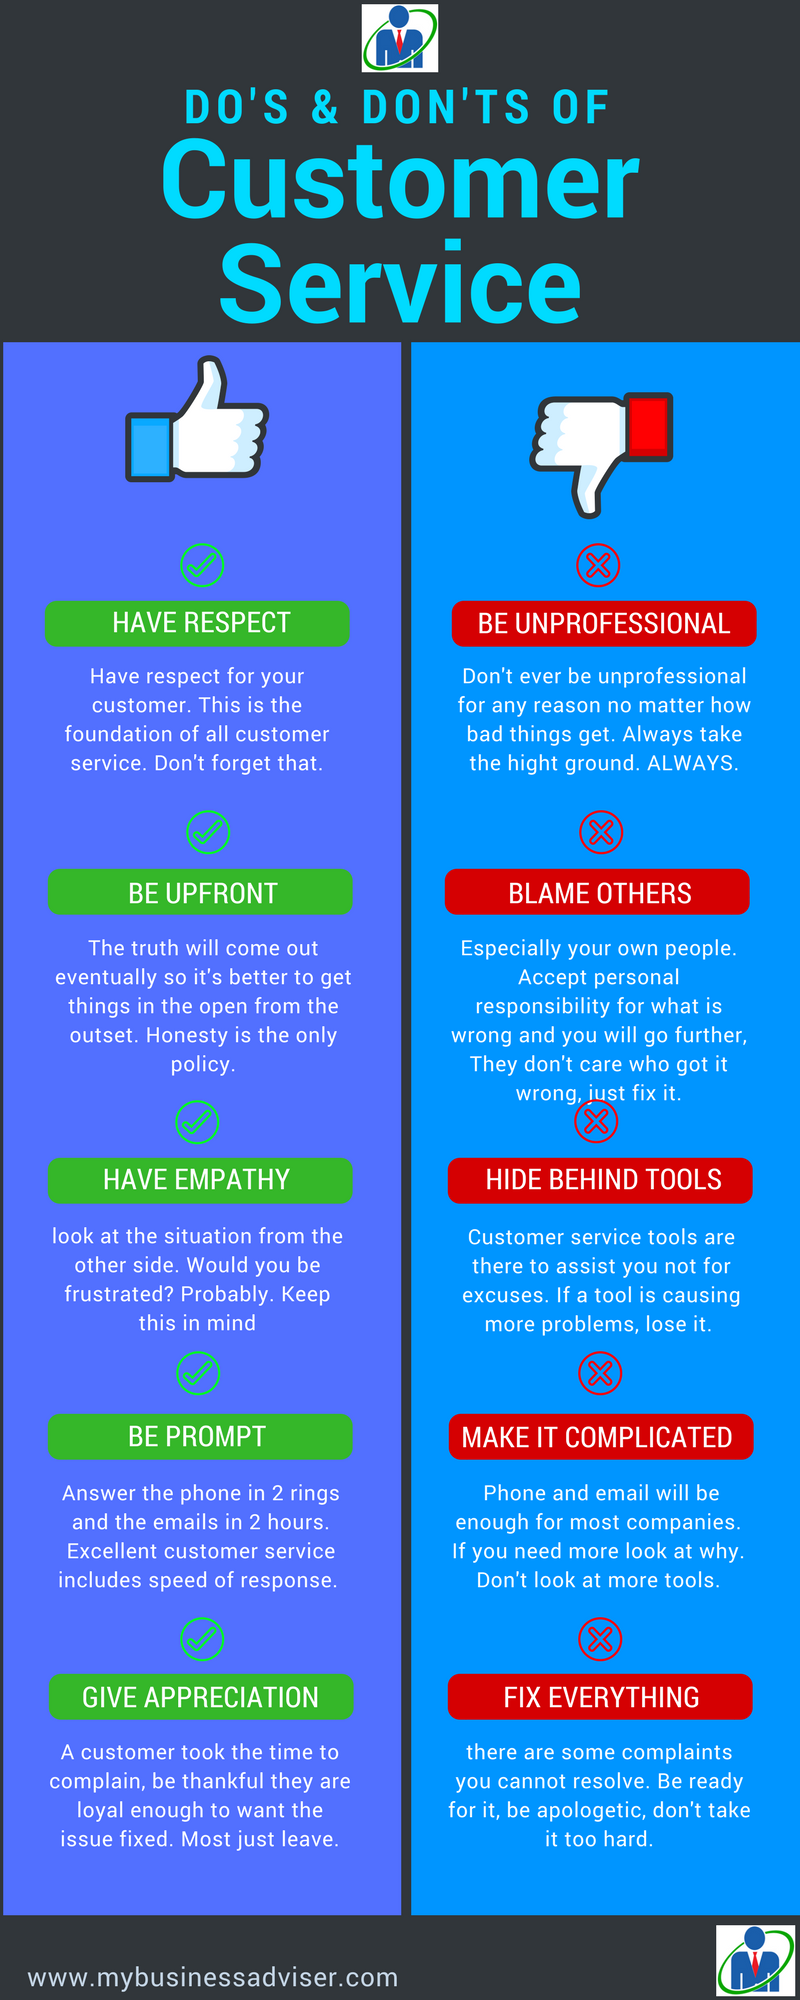 Customer Service - Do's and Don't of Customer service